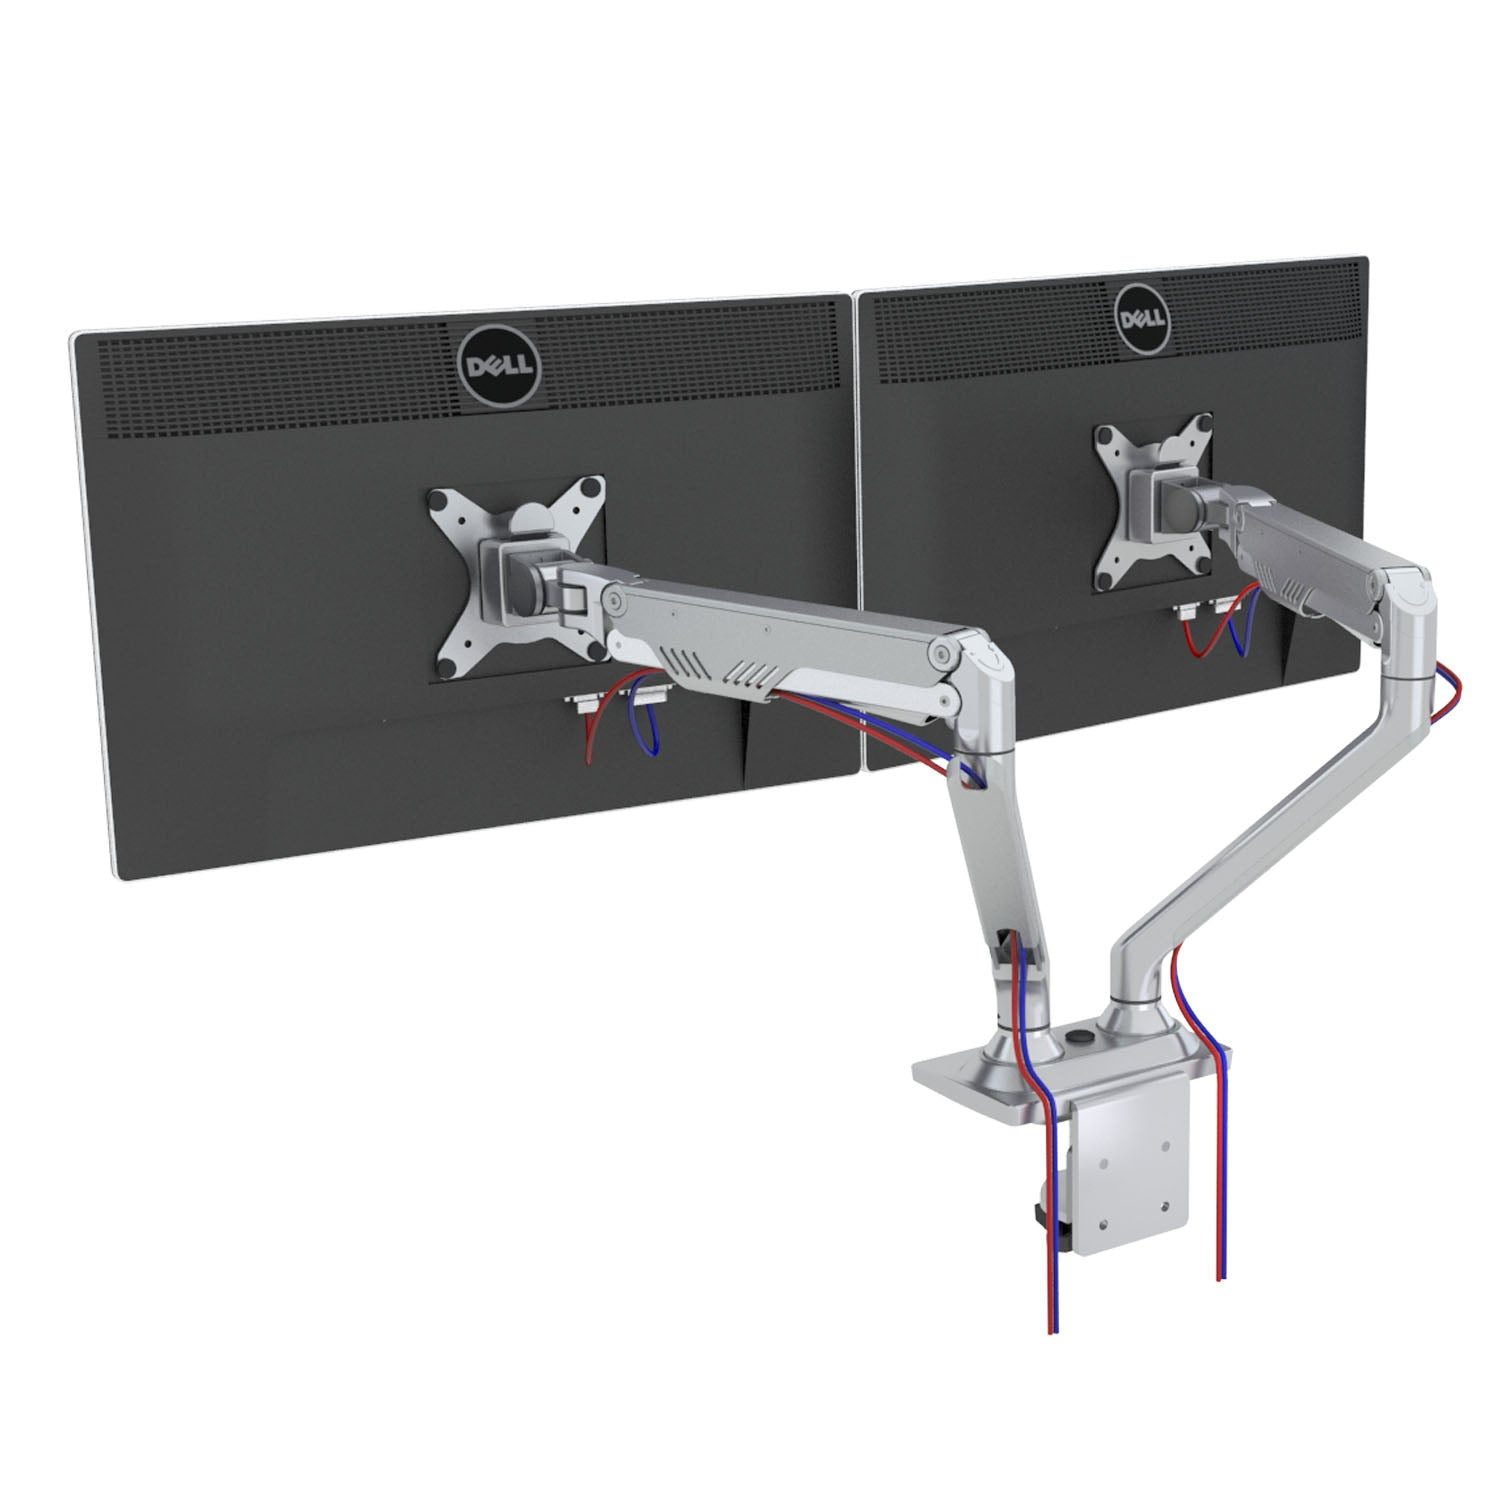 ThingyClub Professional Gas Spring Desk Mount LCD Monitor Arm